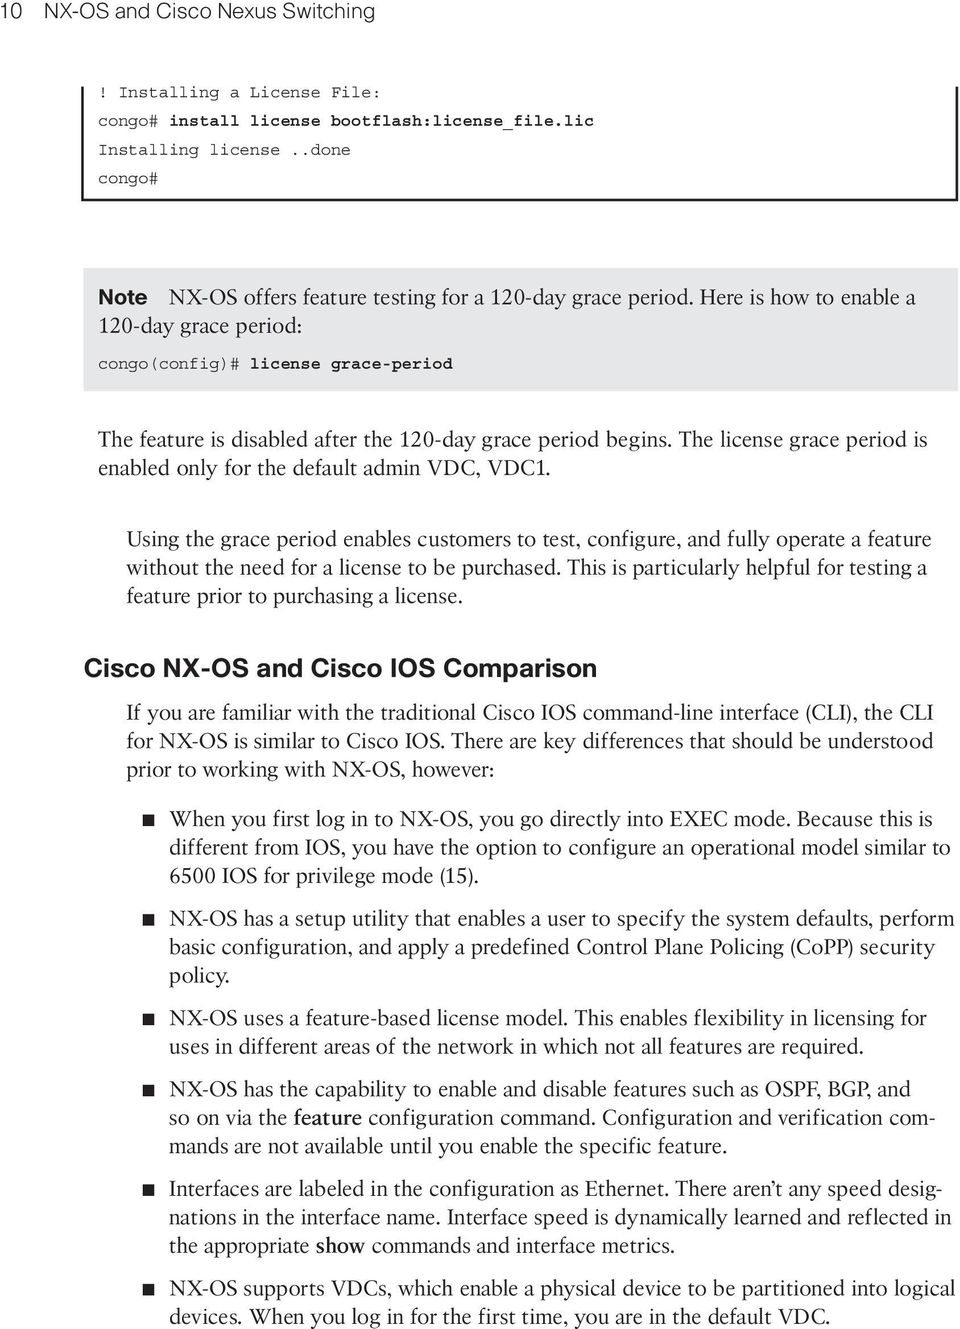 Introduction to Cisco NX-OS - PDF